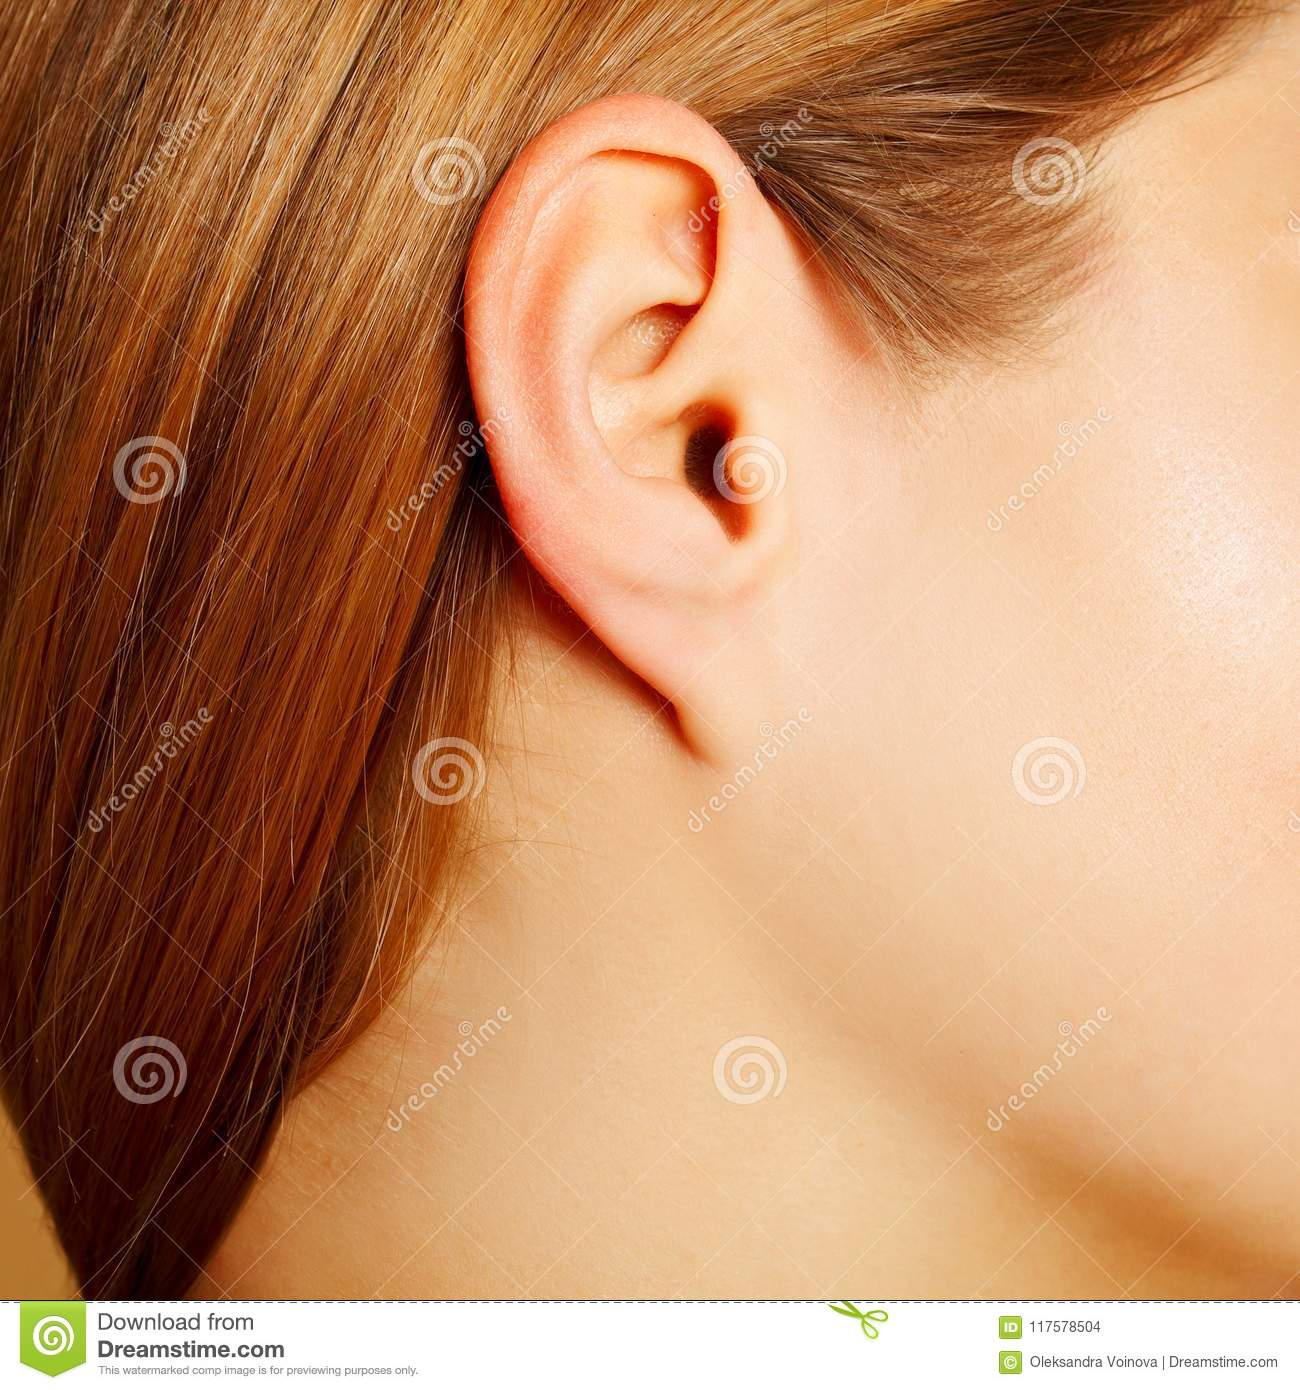 Woman`s Ear Close Up, Anatomy Concept Stock Photo - Image of female ...